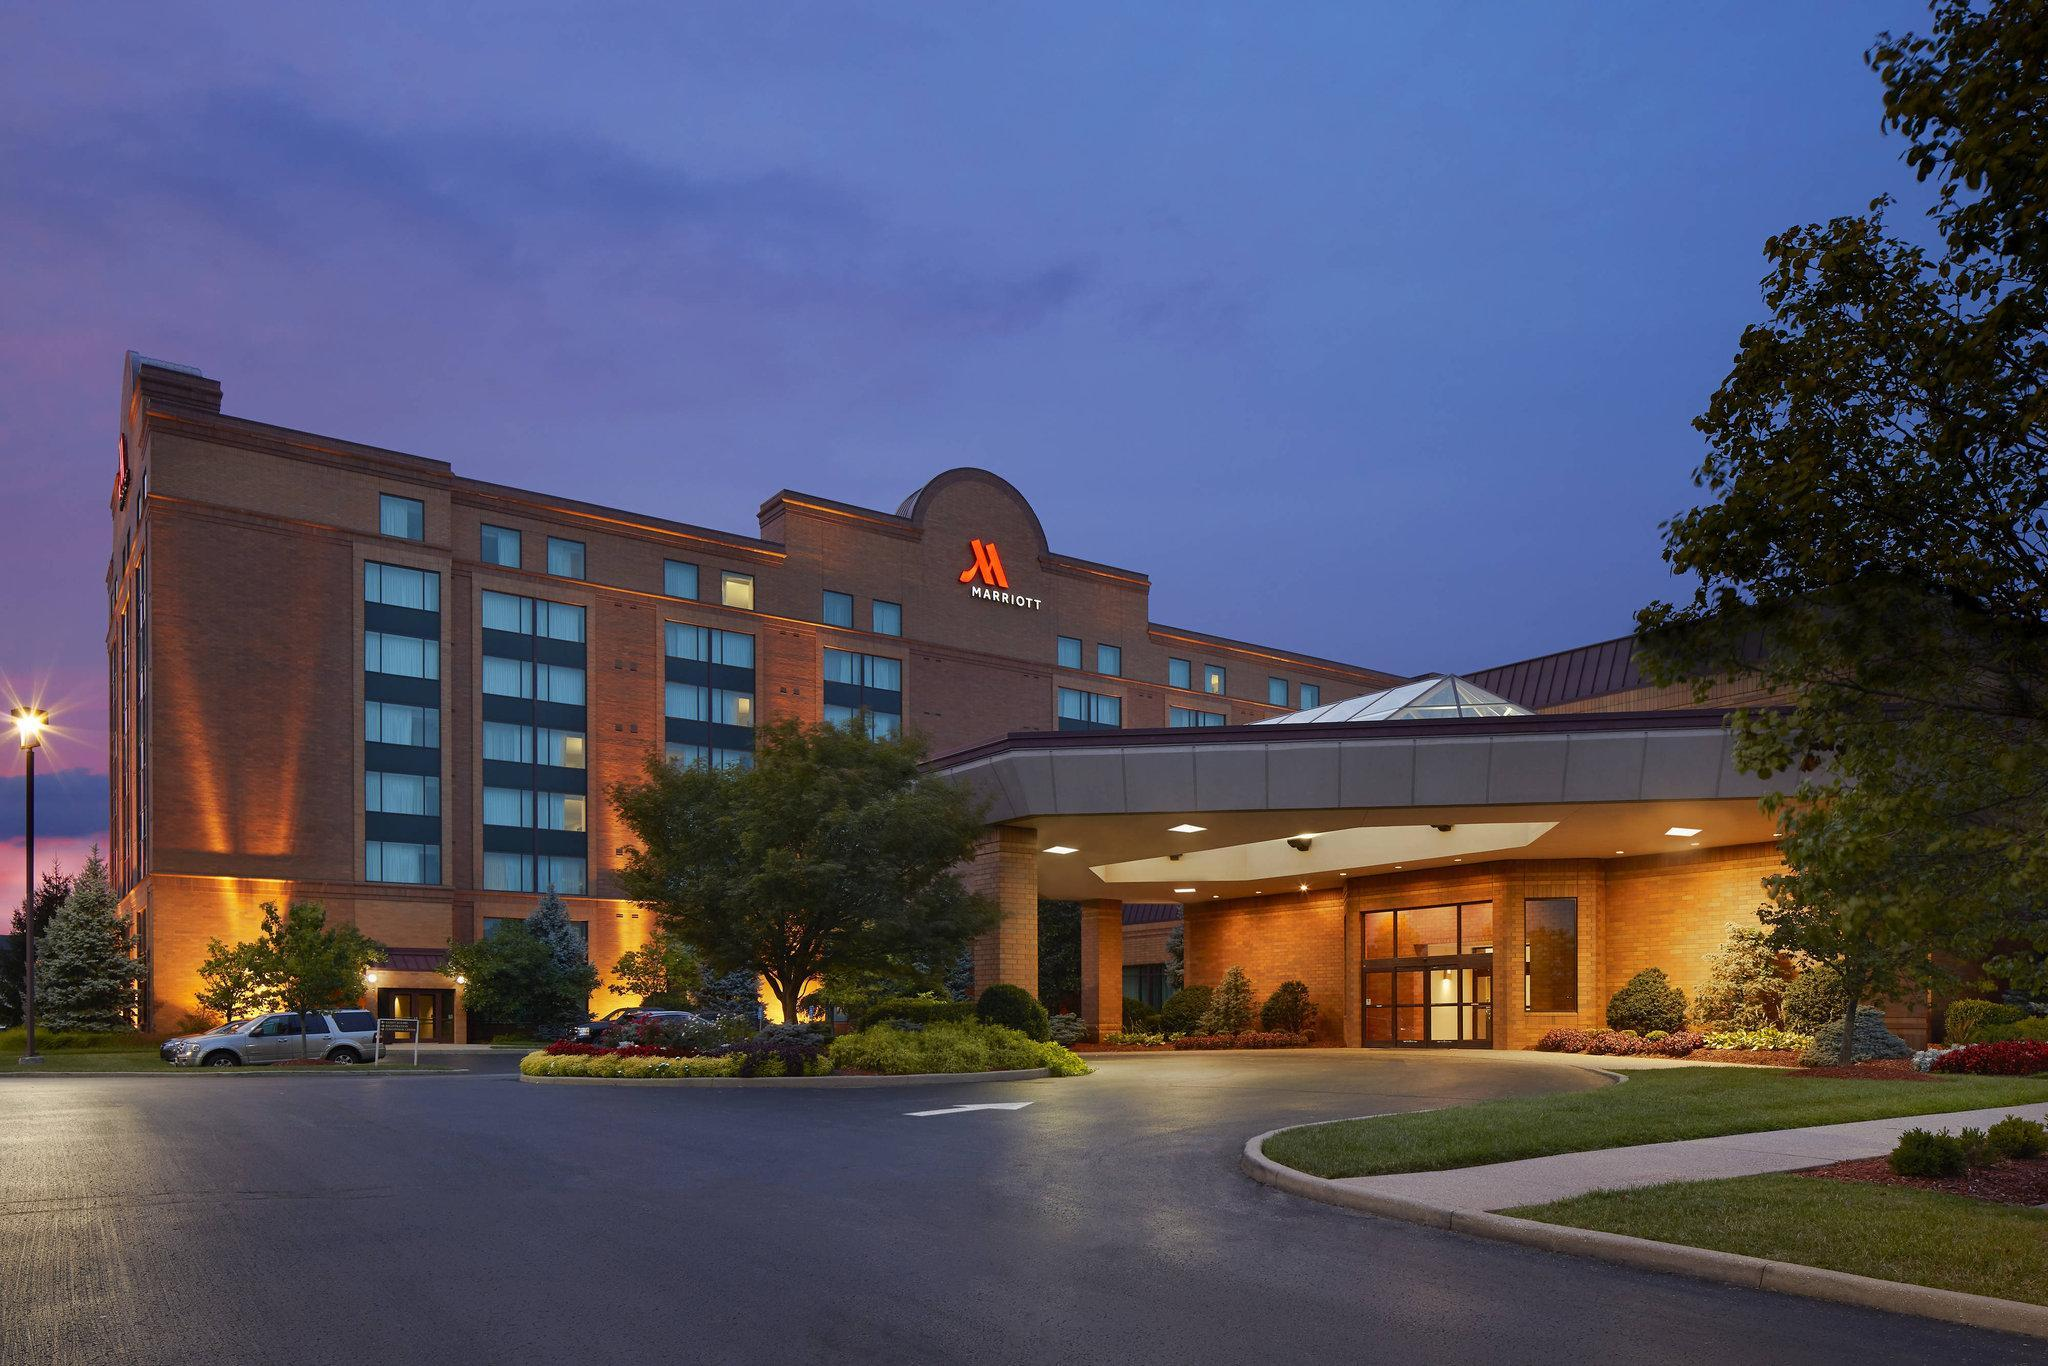 Marriott Cincinnati Airport